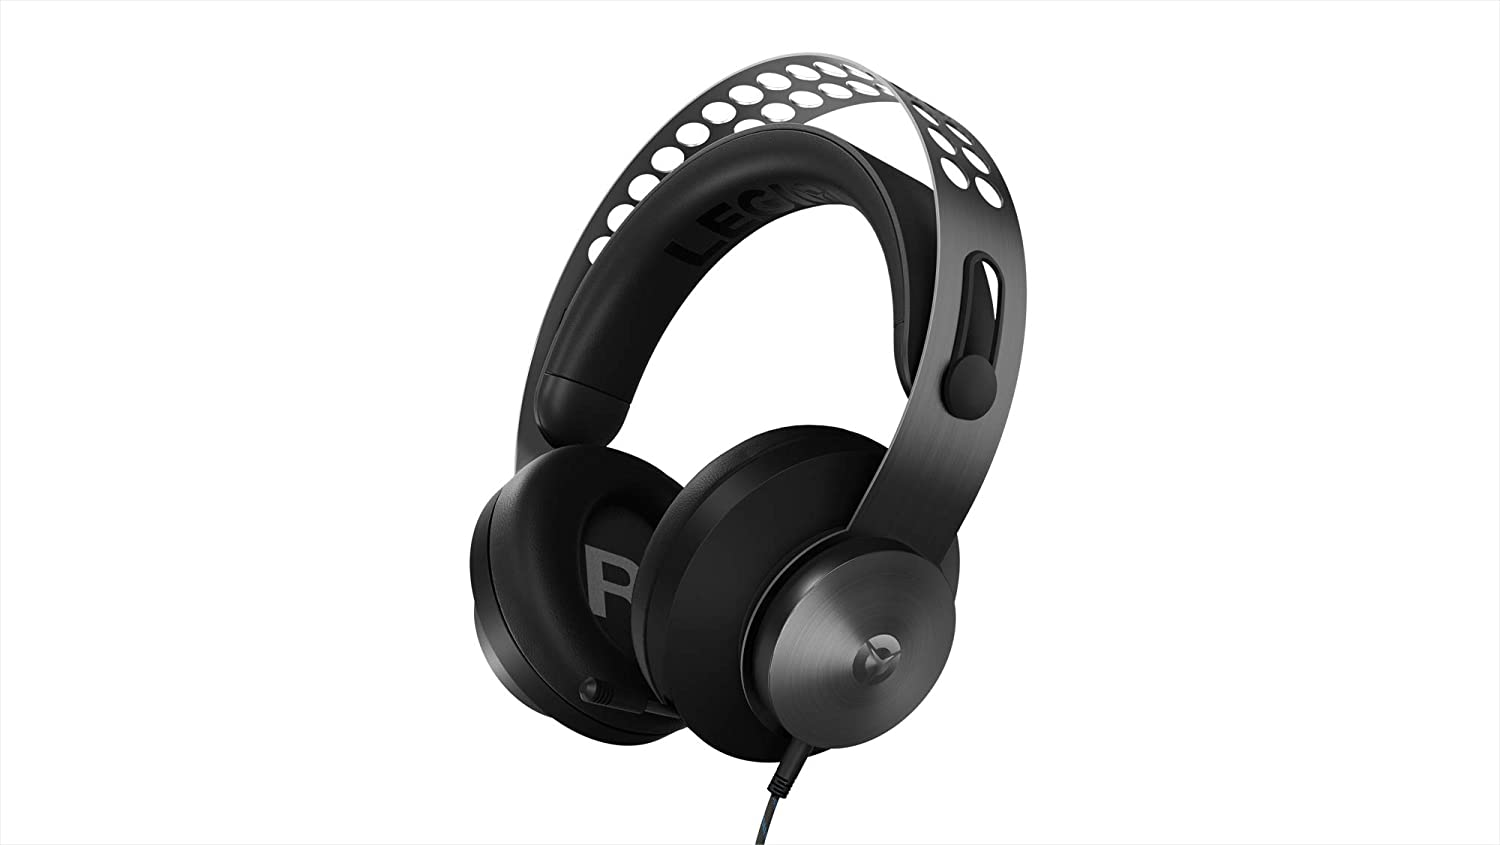 Lenovo Legion H500 PRO 7.1 Surround Sound Gaming Headset, Noise-Cancelling Mic, Memory Foam & PU Leather Earcups, Stainless Steel Headband, PC, PS4, Xbox One, Nintendo Switch, GXD0T69864, Black